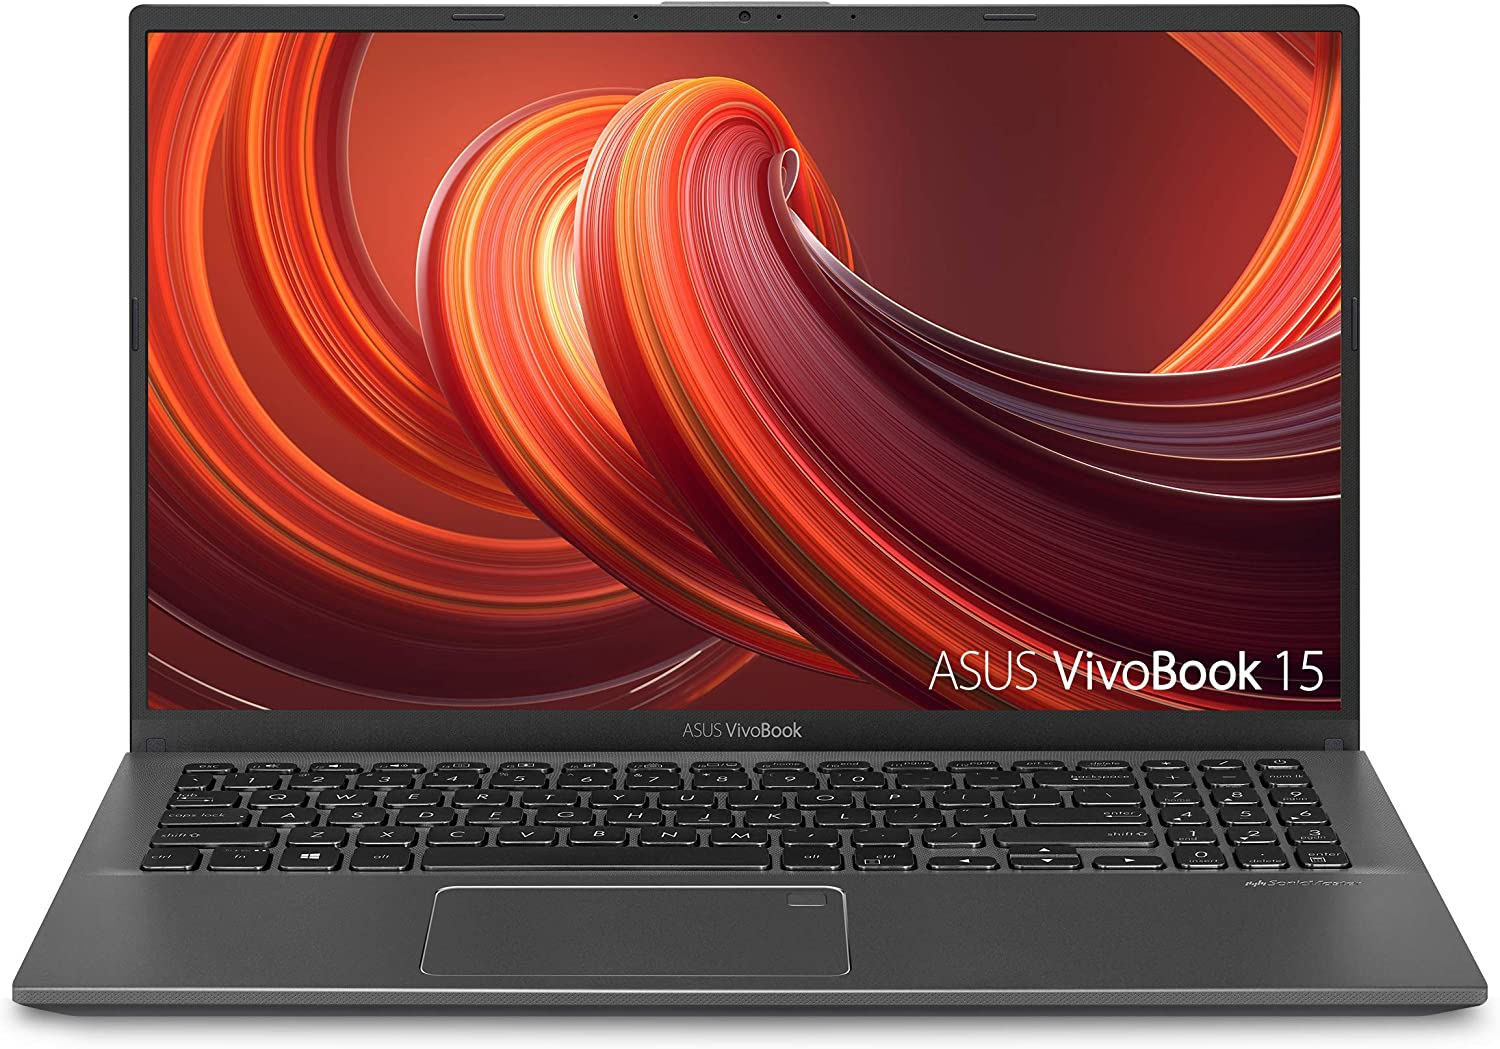 "ASUS VivoBook 15 Thin and Light Laptop, 15.6"" Full HD, AMD Quad Core R5-3500U CPU, 8GB DDR4 RAM, 256GB PCIe SSD, AMD Radeon Vega 8 Graphics, Windows 10 Home, F512DA-EB51, Slate Gray (Renewed)"